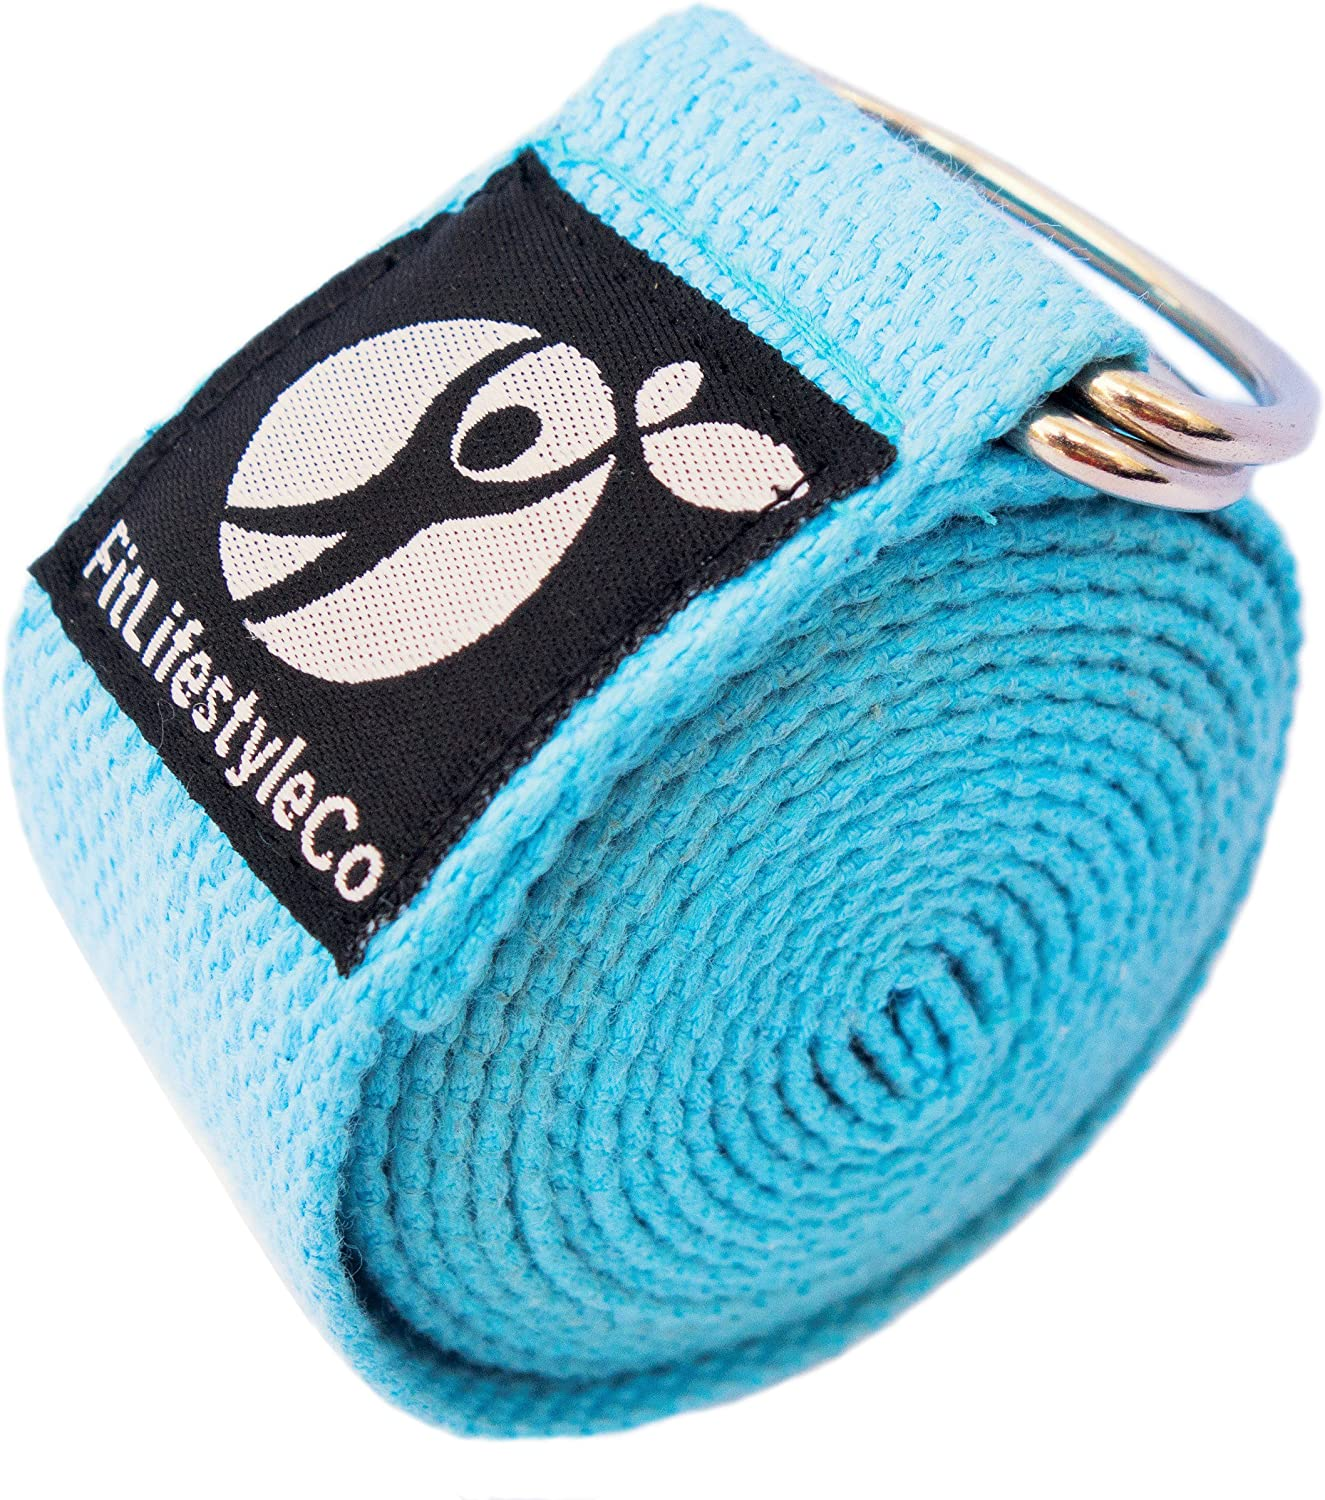 Yoga Strap Best for Stretching - 6 Colors Instructional Video - Durable Cotton with Metal D-Ring - by FitLifestyleCo